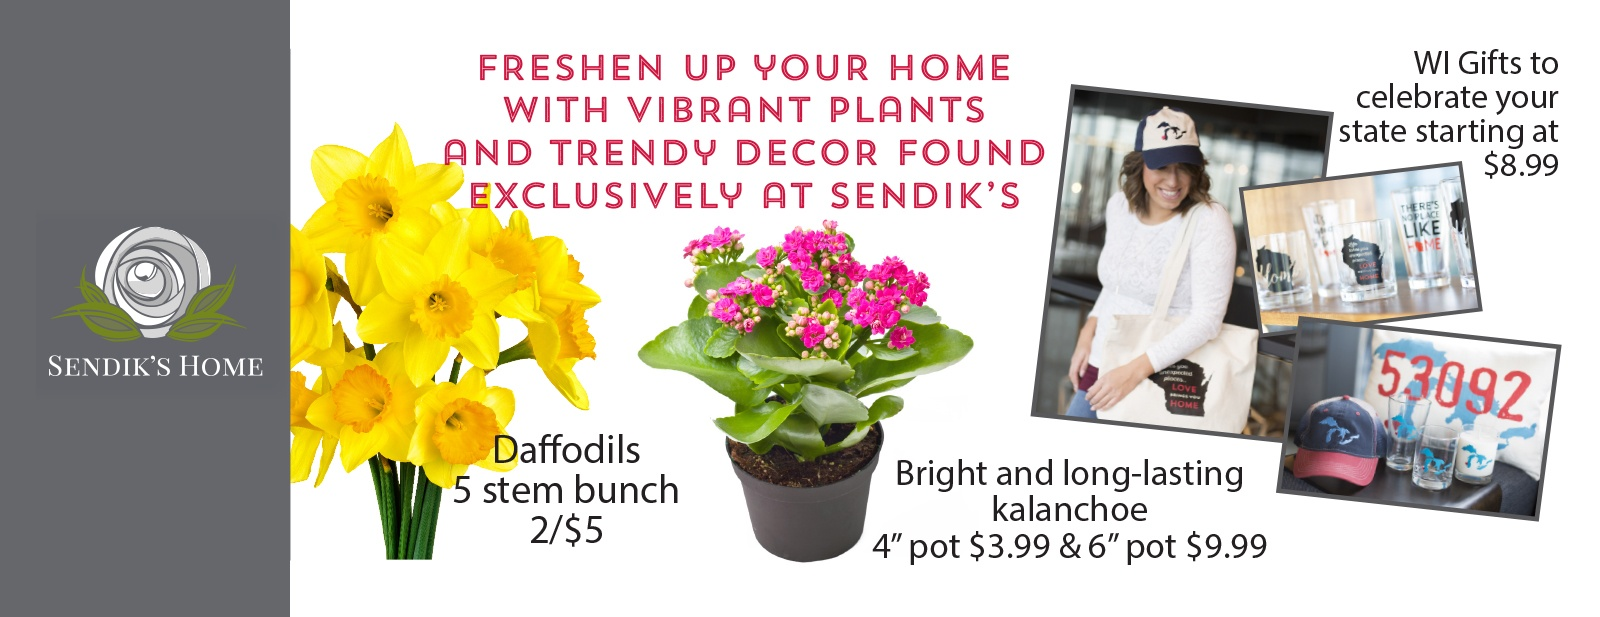 Freshen up your home with vibrant plants and trendy decor found exclusively at Sendik's